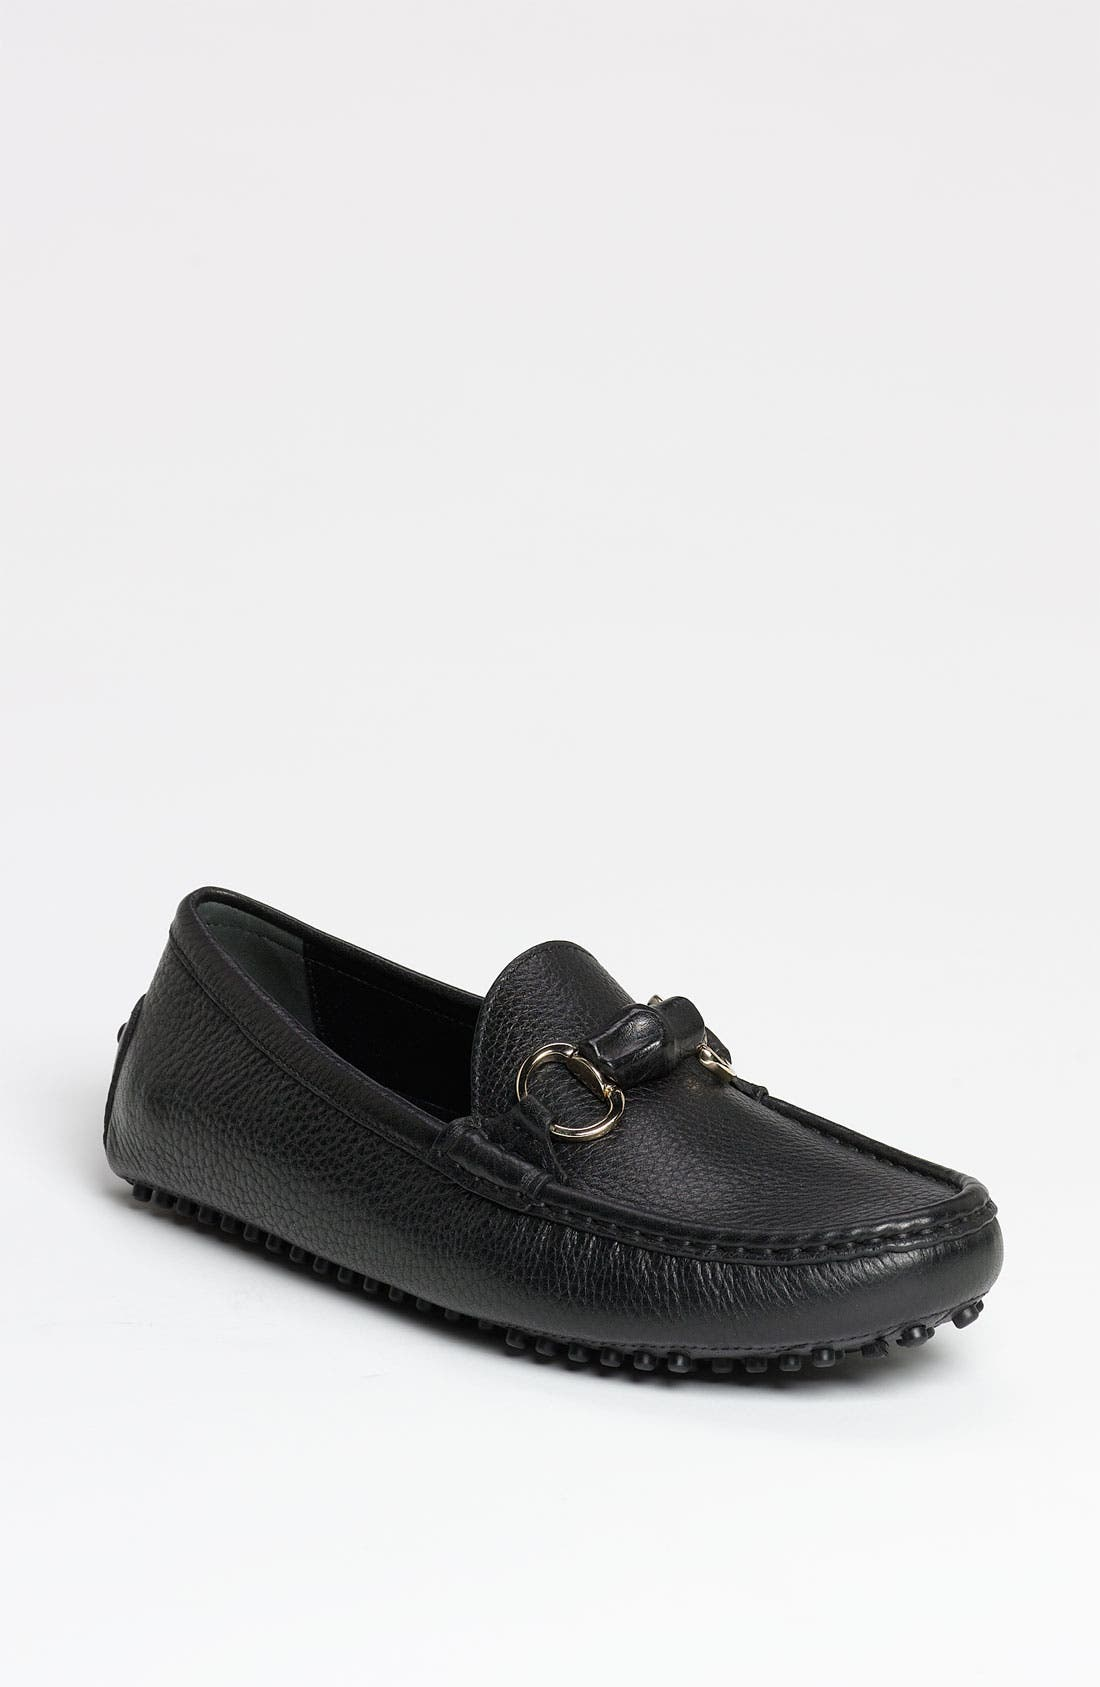 Alternate Image 1 Selected - Gucci 'Damo' Loafer